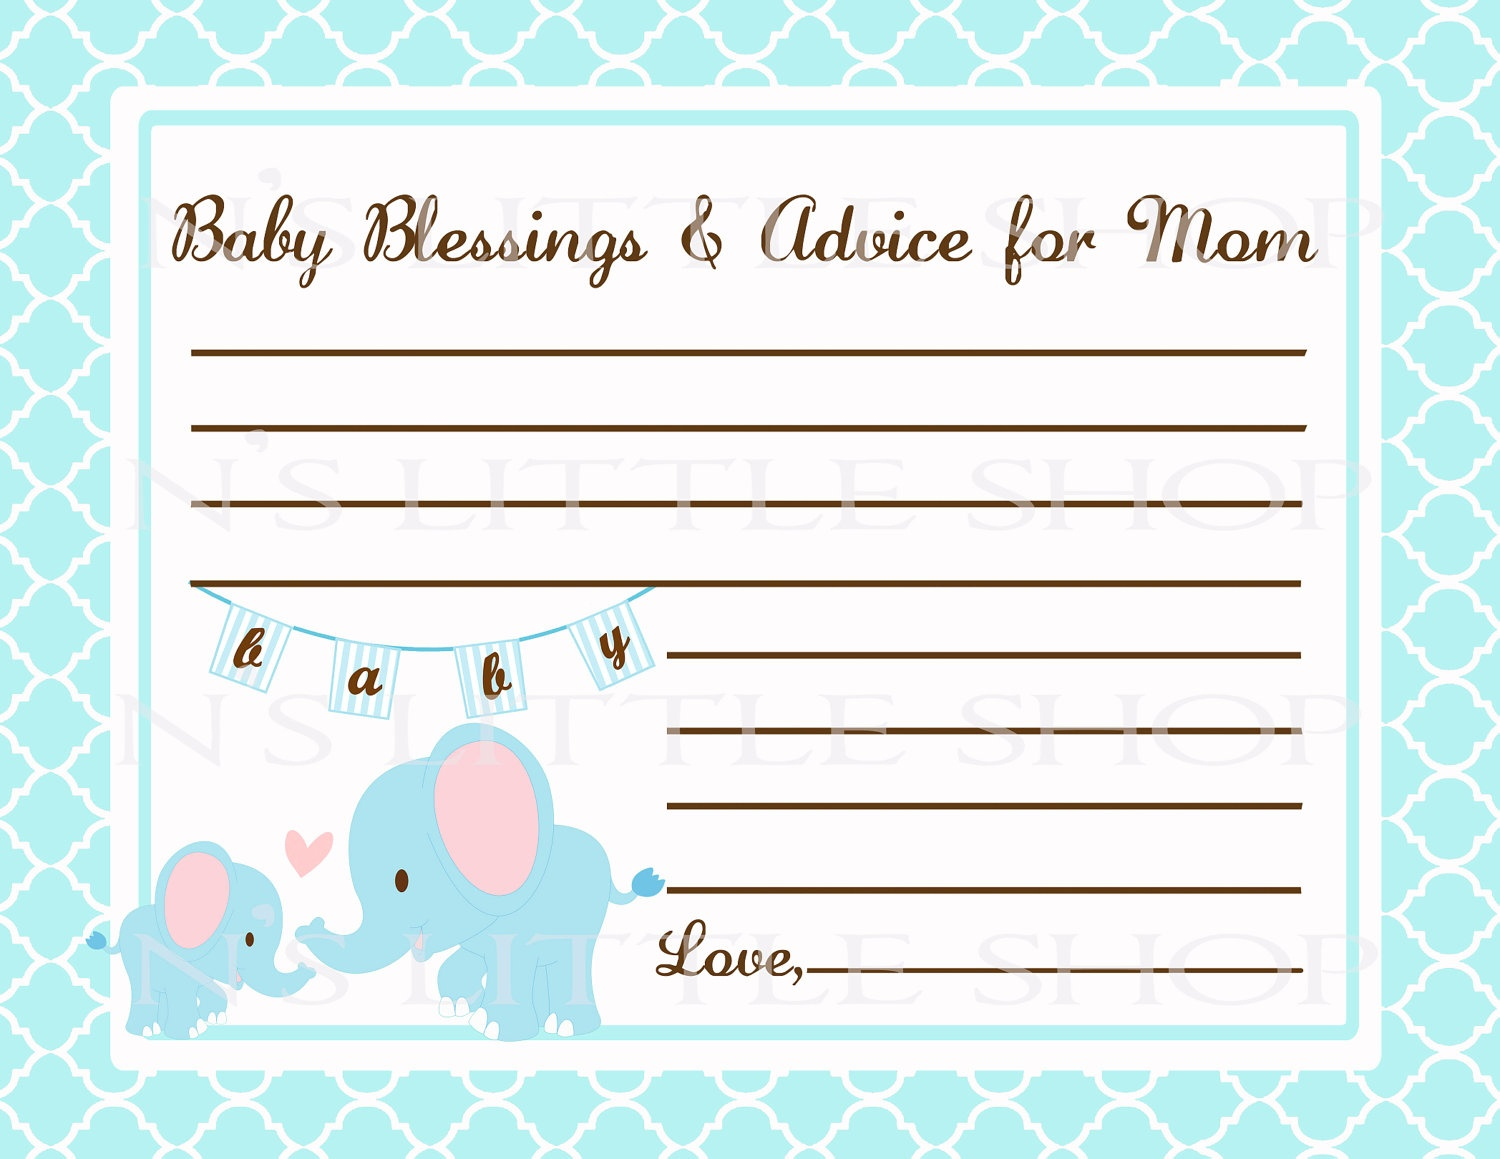 Free Printable Baby Shower Advice Cards - Printable Cards - Free Printable Advice Cards For Baby Shower Template